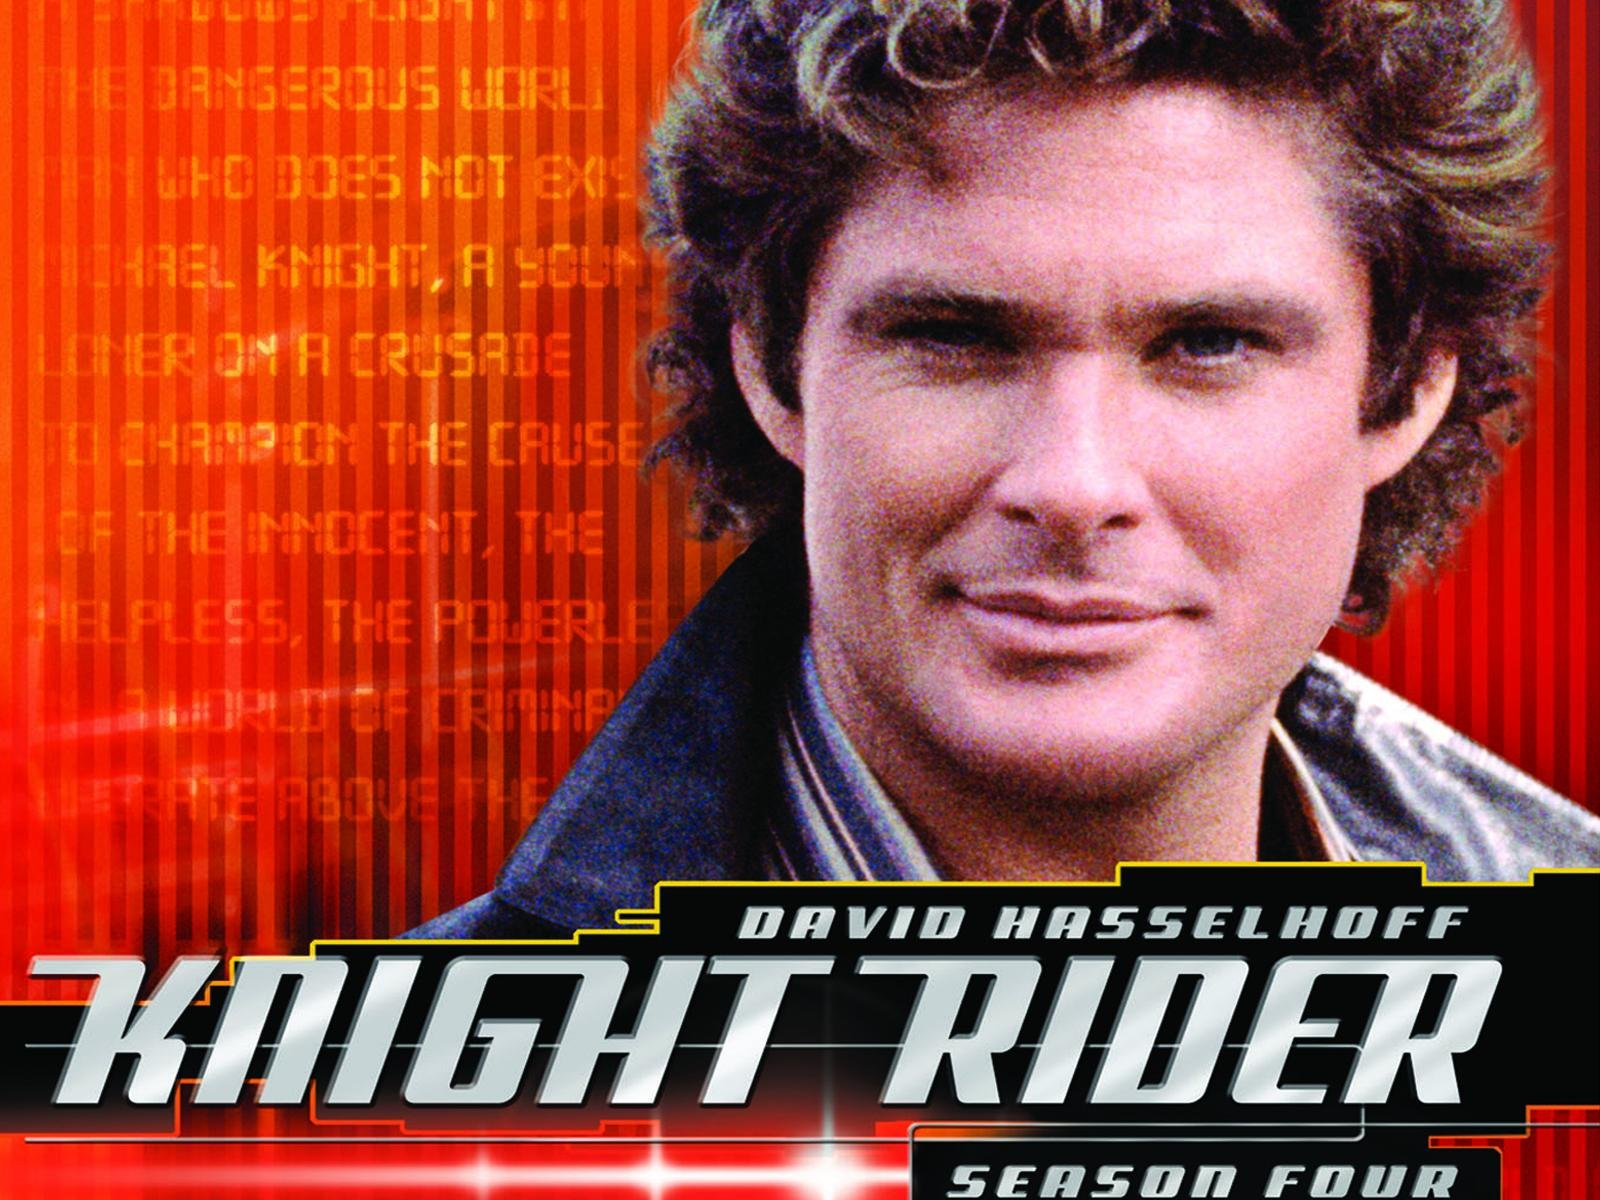 Amazon.com: Knight Rider Classic Season 4: David Hasselhoff, William Daniels, Edward Mulhare, Peter Parros, Patricia McPherson, Peter Cullen, Rebecca Holden ...